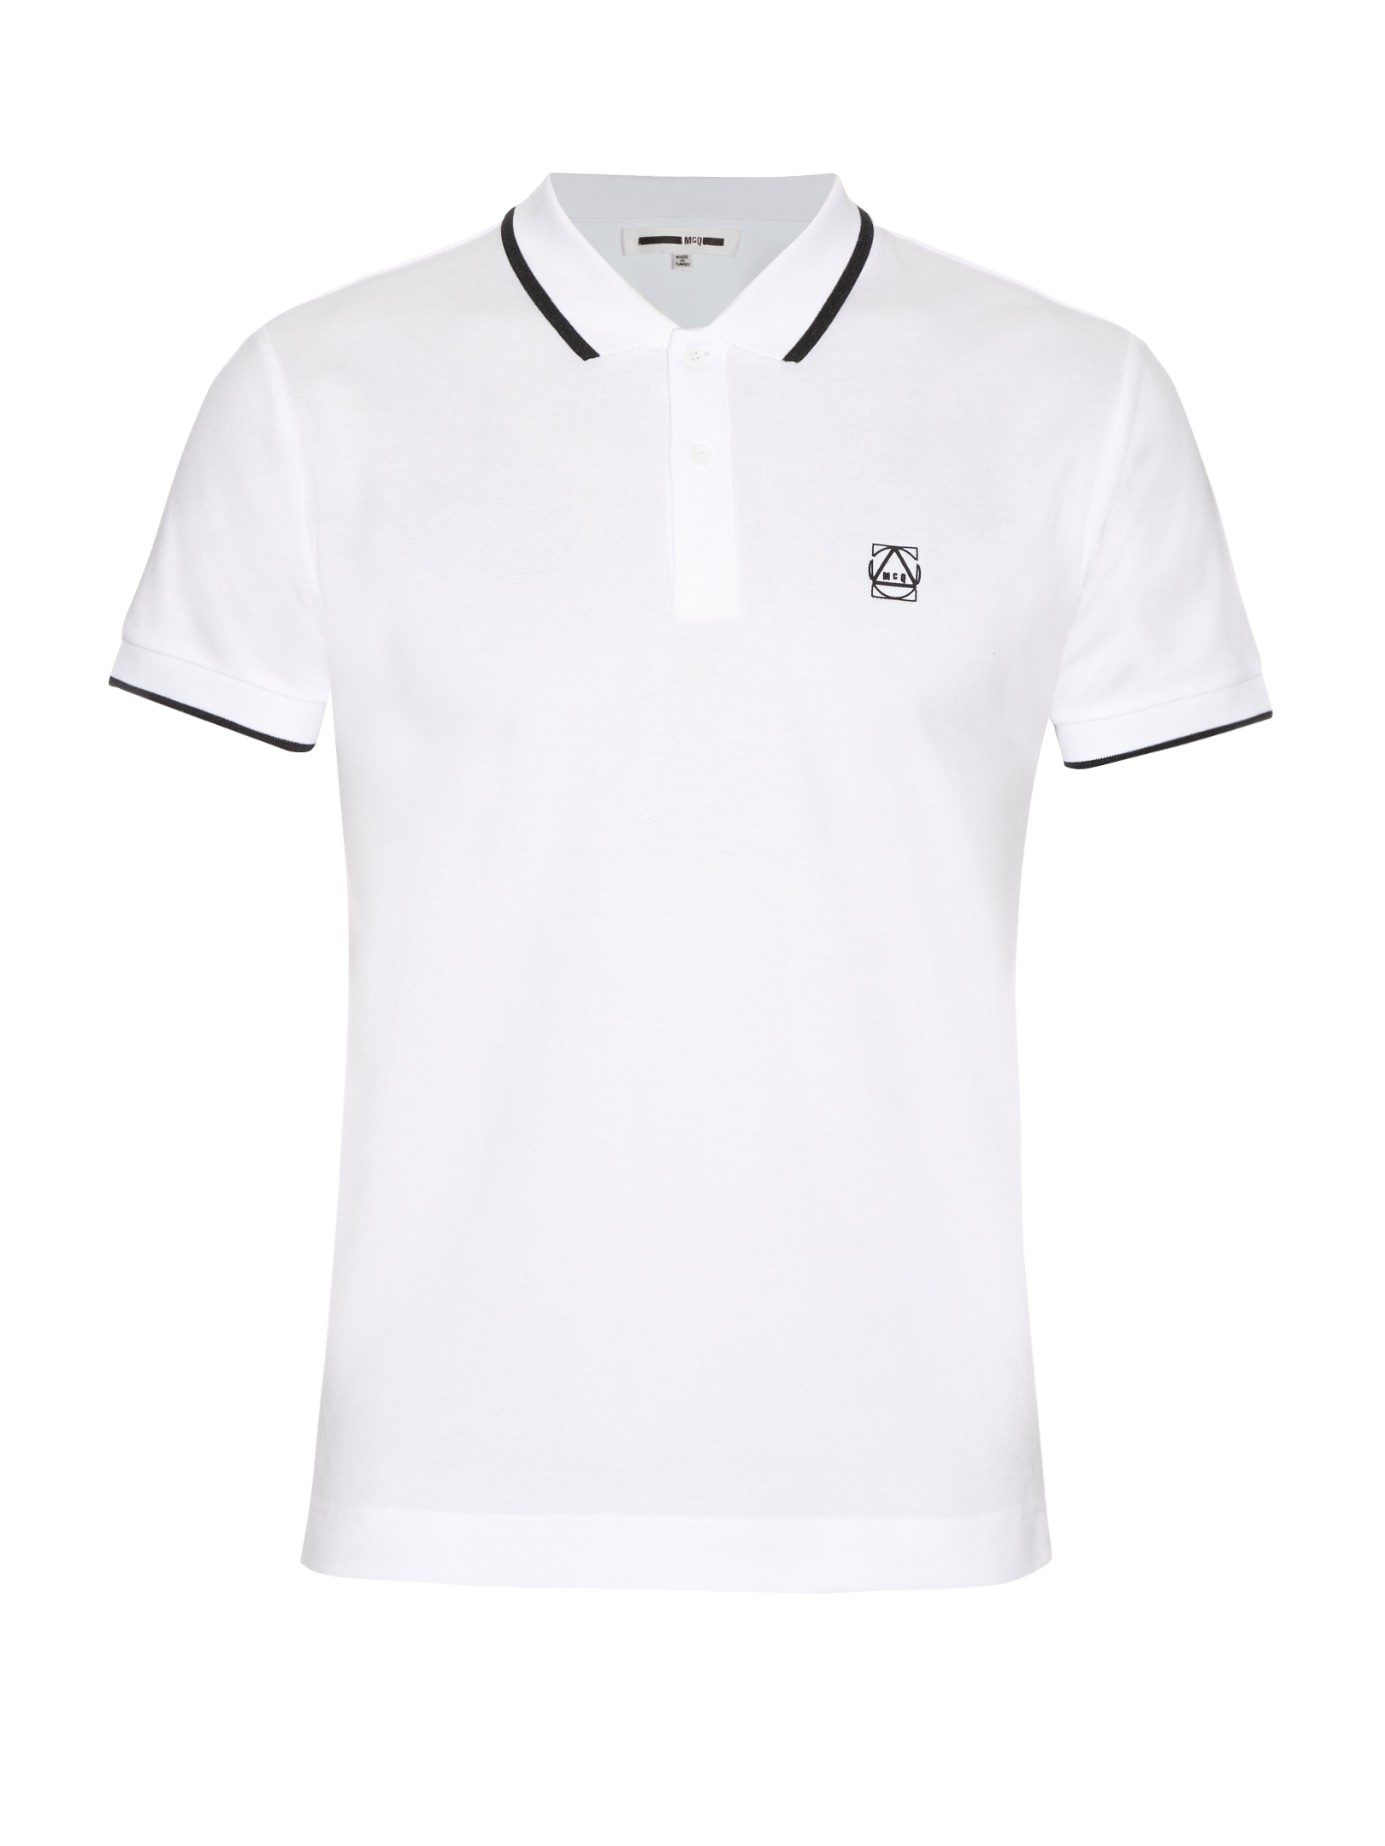 Find great deals on White Shirts for Women, Sleeveless White Shirts for Women, Button Up White Shirts for Women and more at Macy's. Polo (4) Shirt (1) Tie Front (1) Tunic Tommy Hilfiger Cotton Roll-Tab Shirt, Created for Macy's Limited-Time Special $